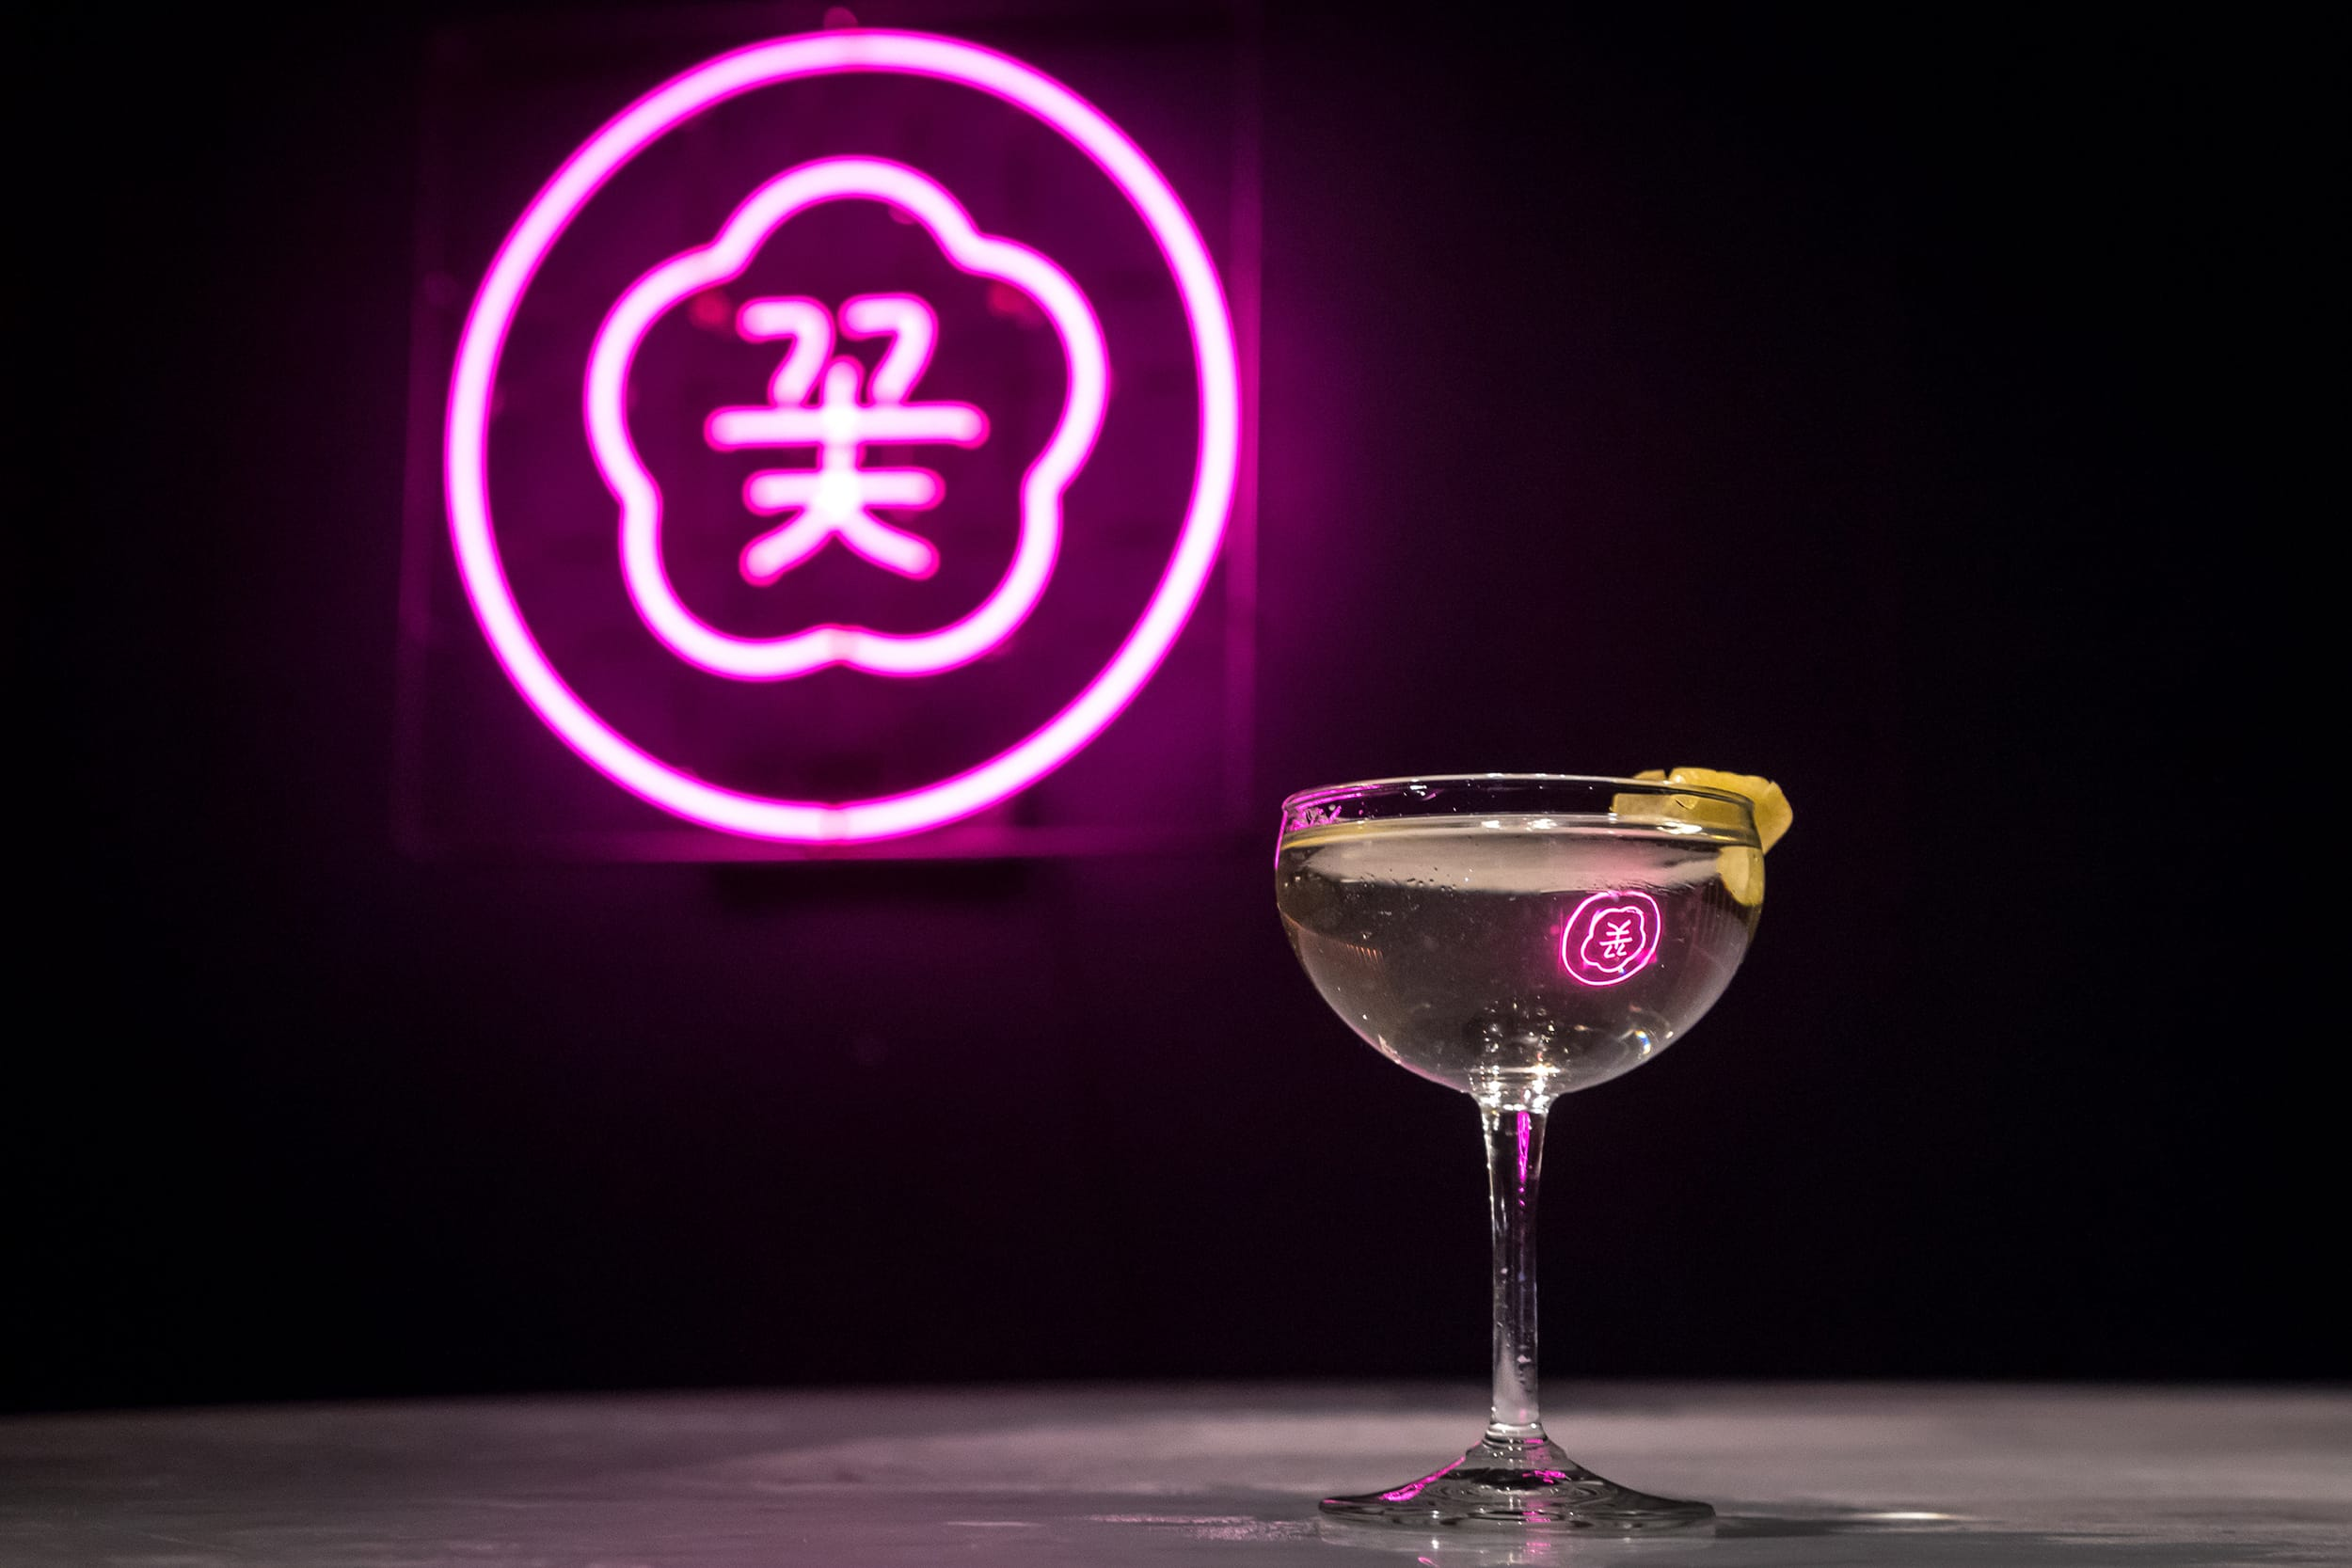 Cocktail sitting on a table with a pink neon sign of the Cote logo in the background